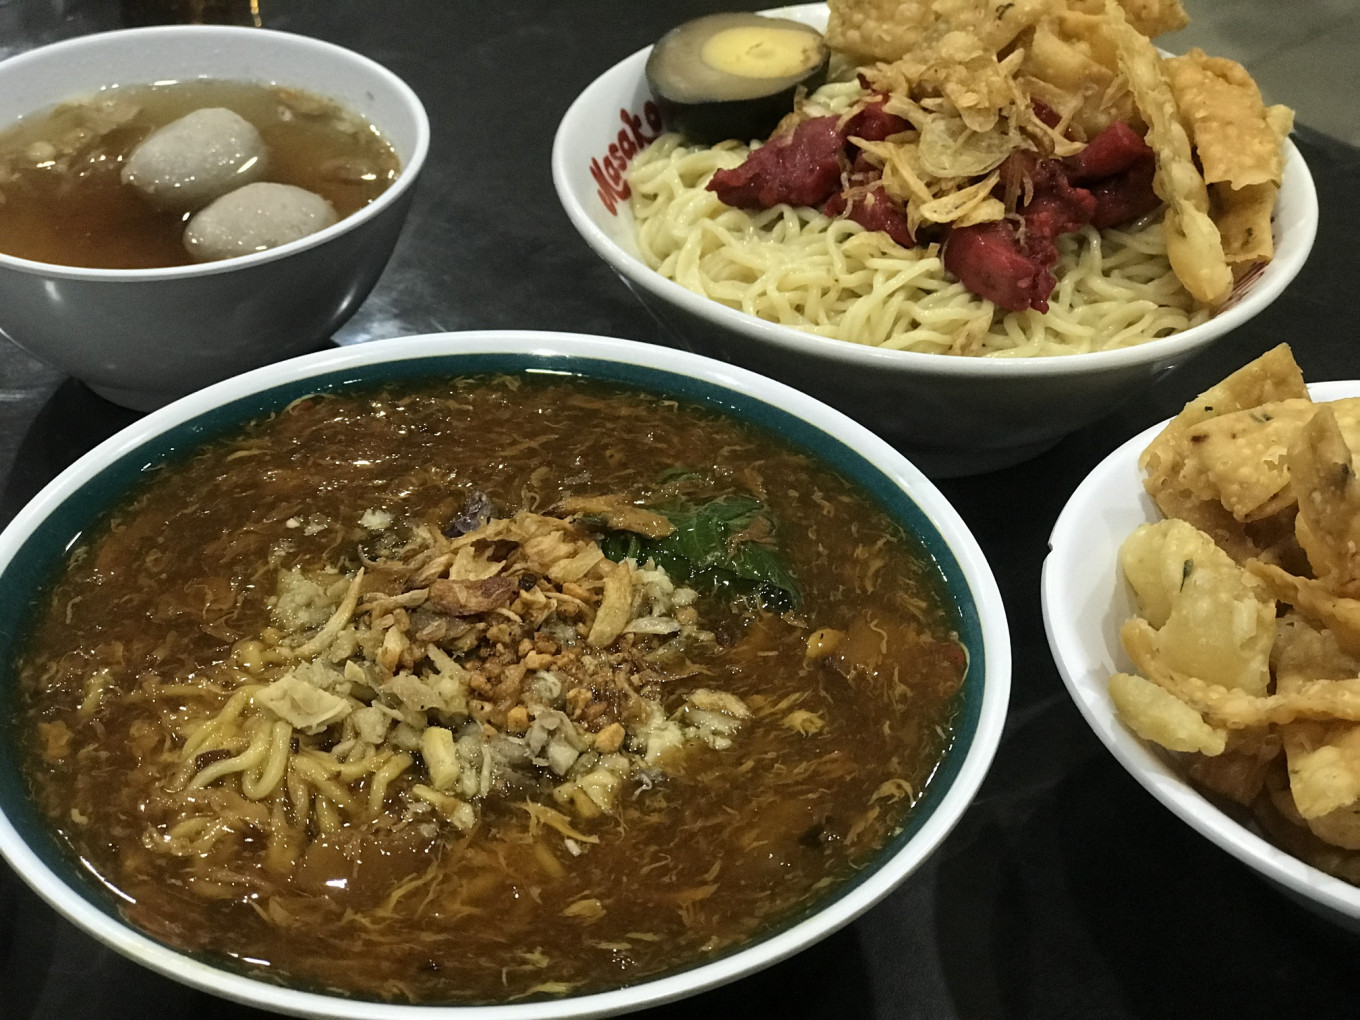 Passion, comfort and legacy in a bowl of noodles